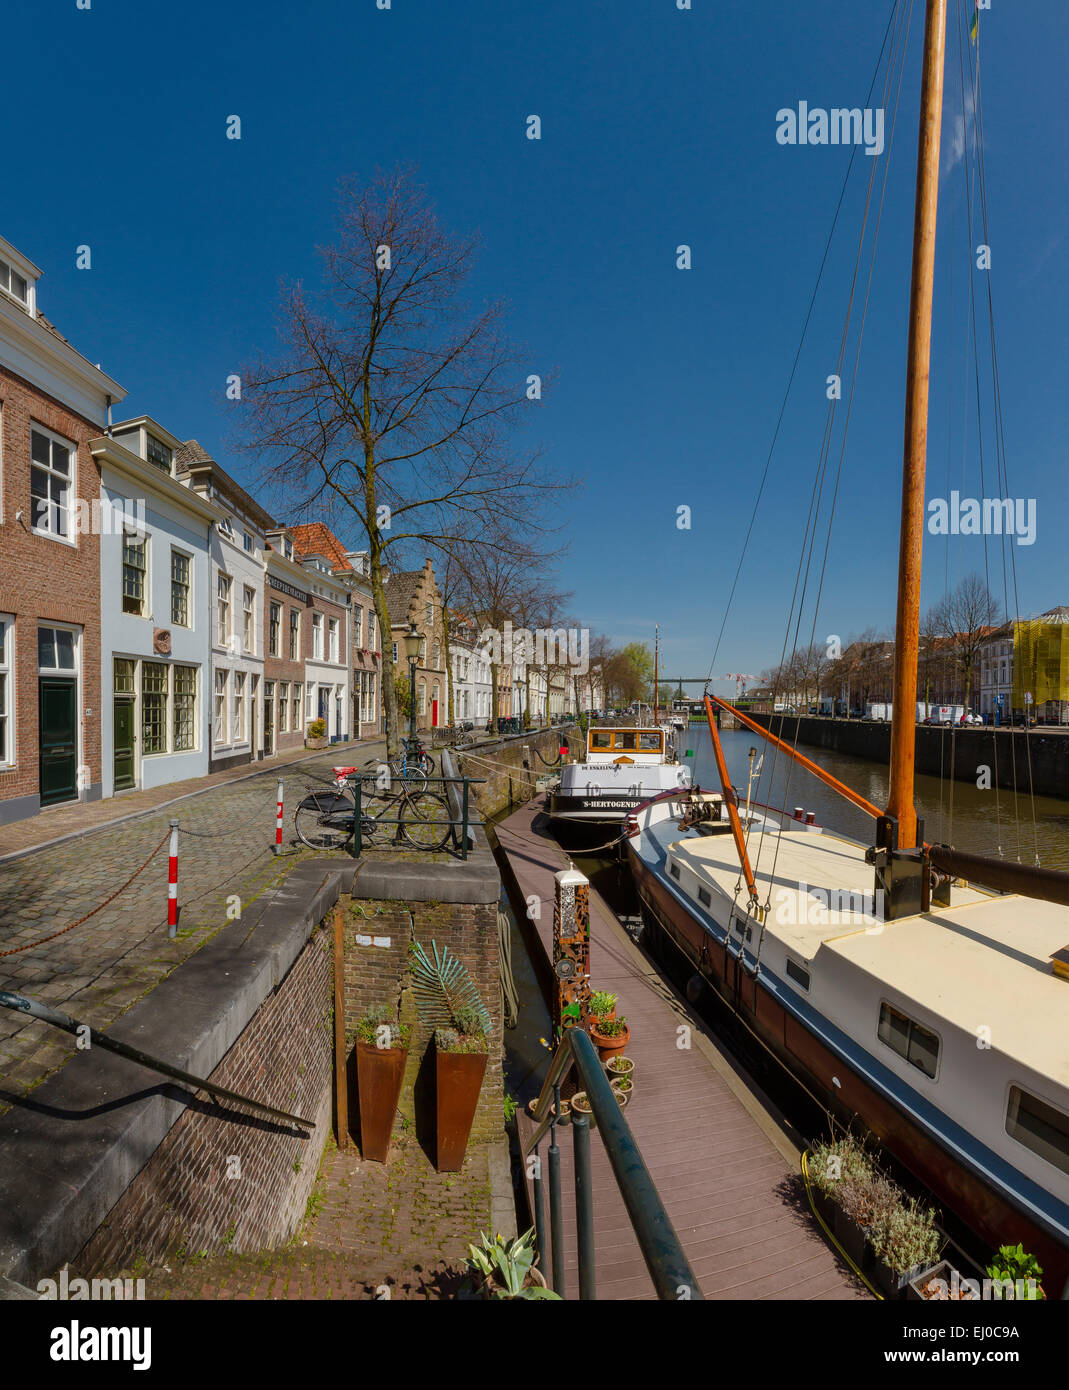 S-Hertogenbosch, Den Bosch, aux Pays-Bas, la Hollande, l'Europe, ville, village, l'eau, printemps, Vieux Photo Stock